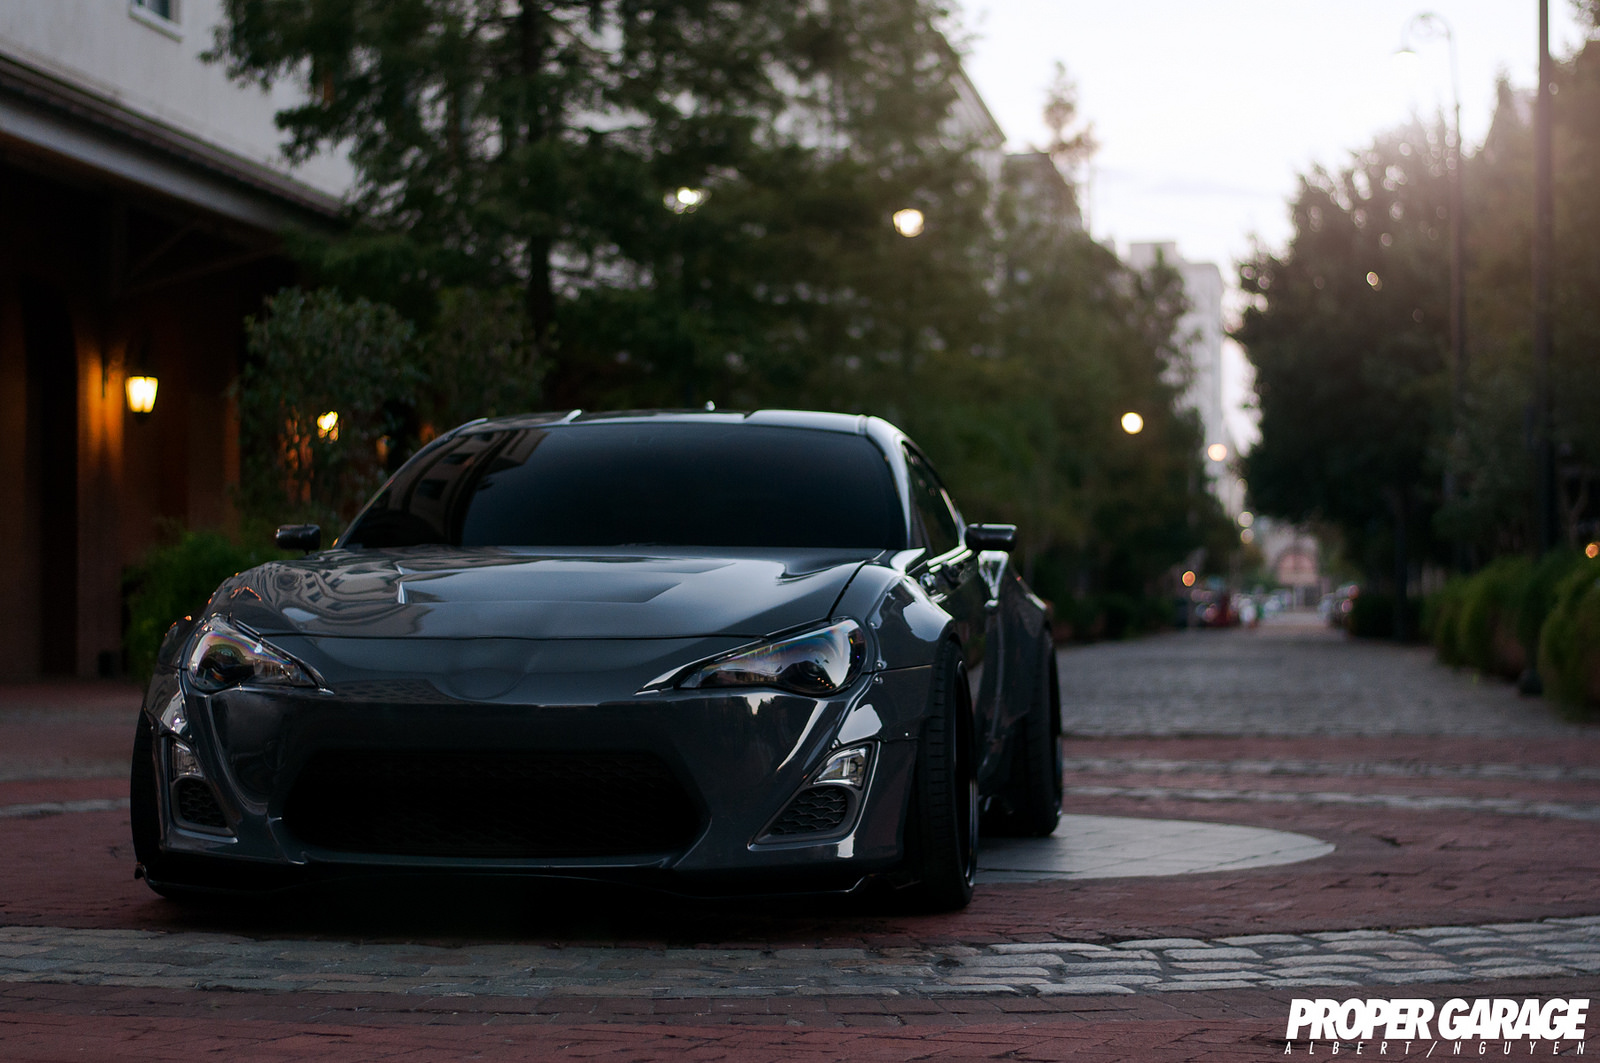 Hellurkittyvo's Rocket Bunny Scion FRS